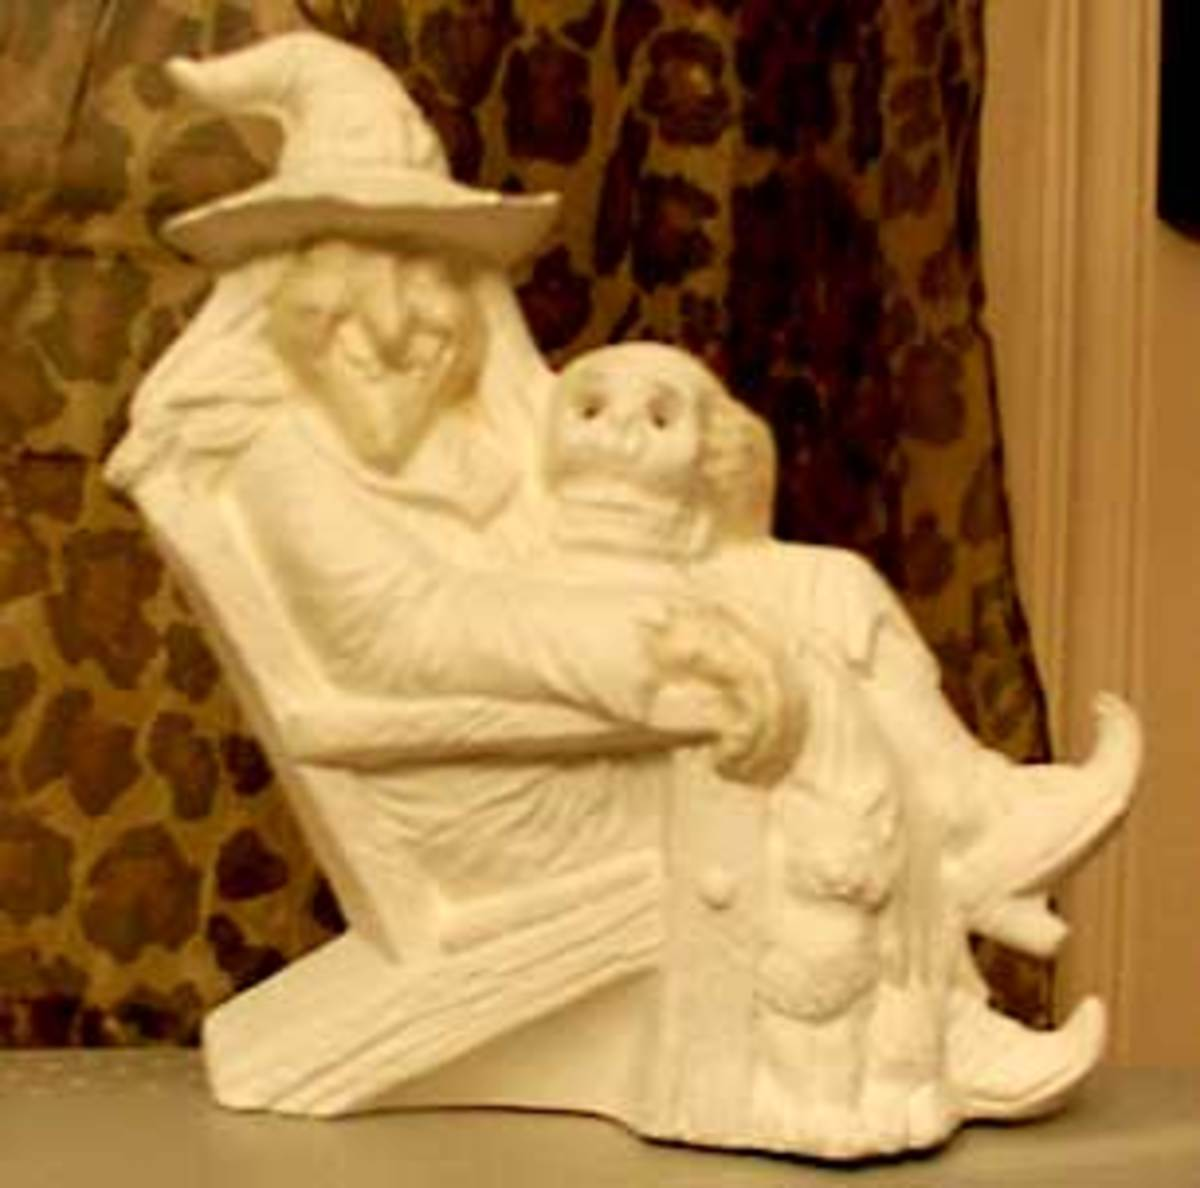 bisque ceramic witch with skull and cat in an Adirondack chair. Her face and hands are sealed with clear varnish. Next time, I'll use a bit of color in it and not paint her skin.